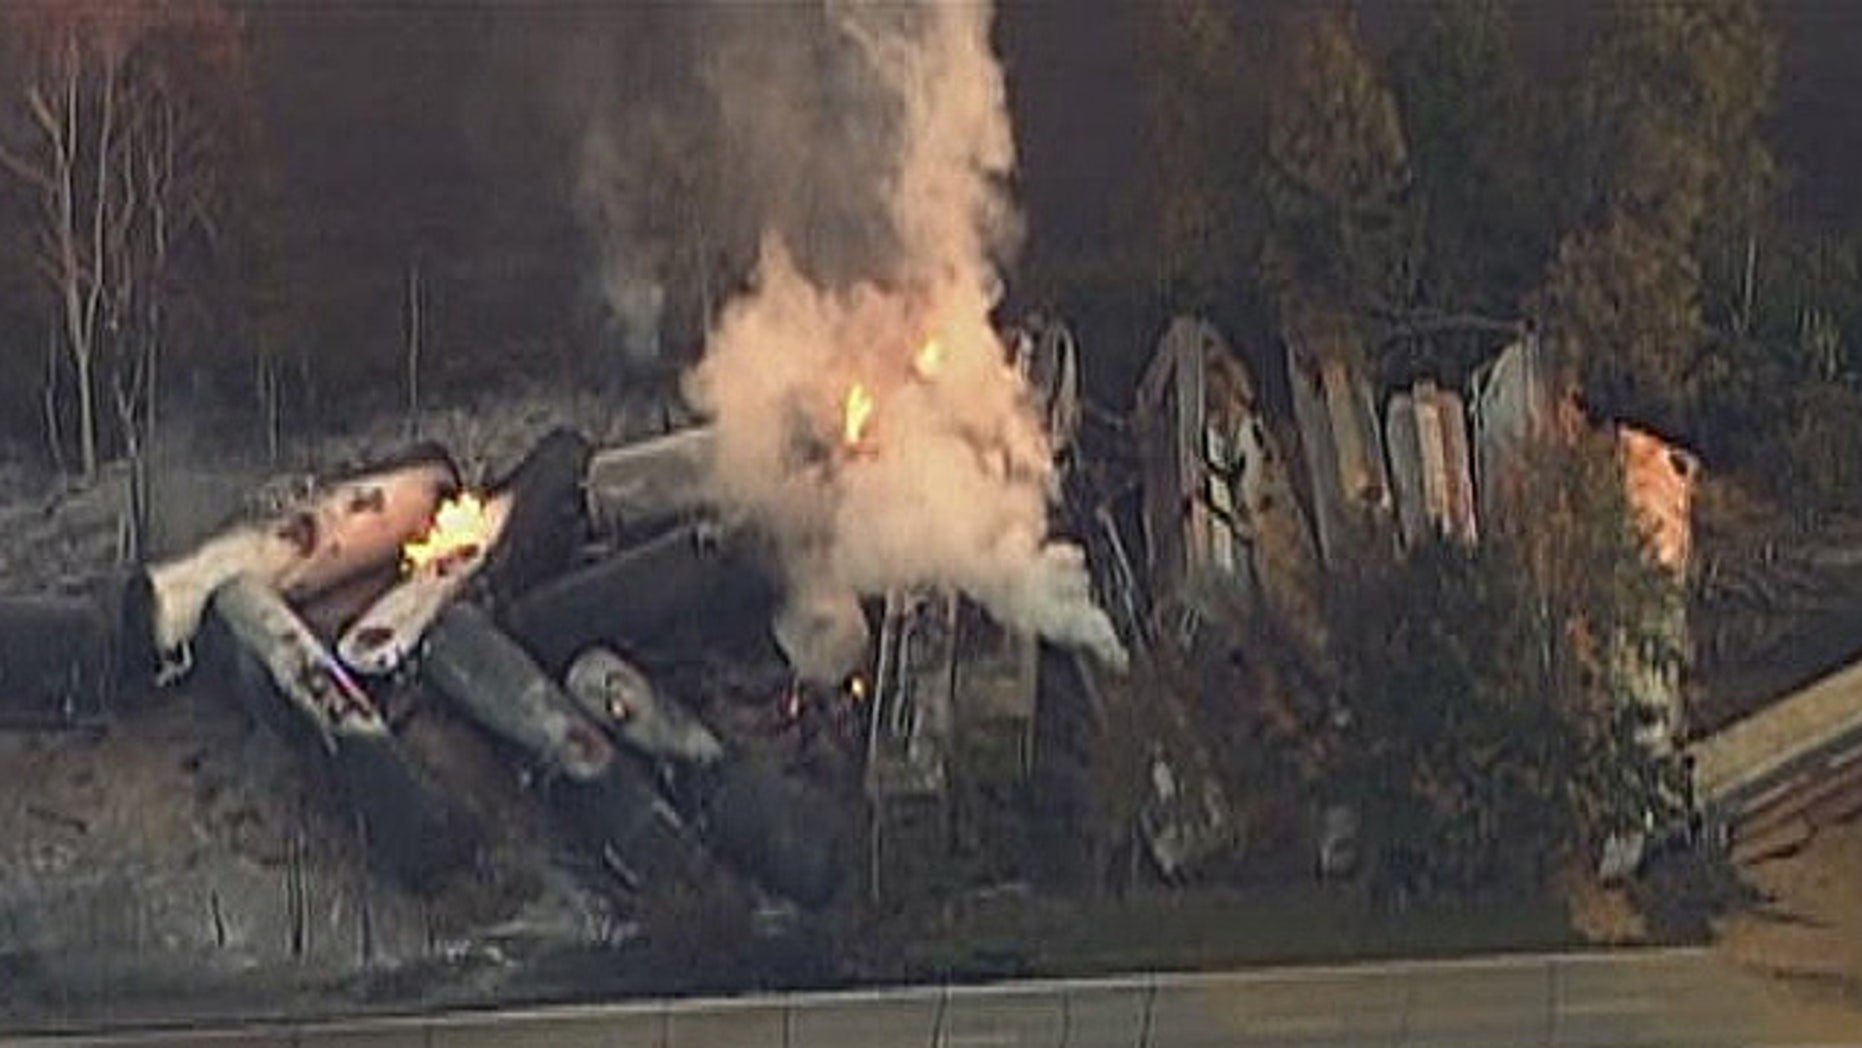 Oct. 7: Capt. Steve Haywood of the Ottawa Fire Department said the train's tanker cars were shipping ethanol for Decatur-based corn processor Archer Daniels Midland, and possibly other materials and chemicals.